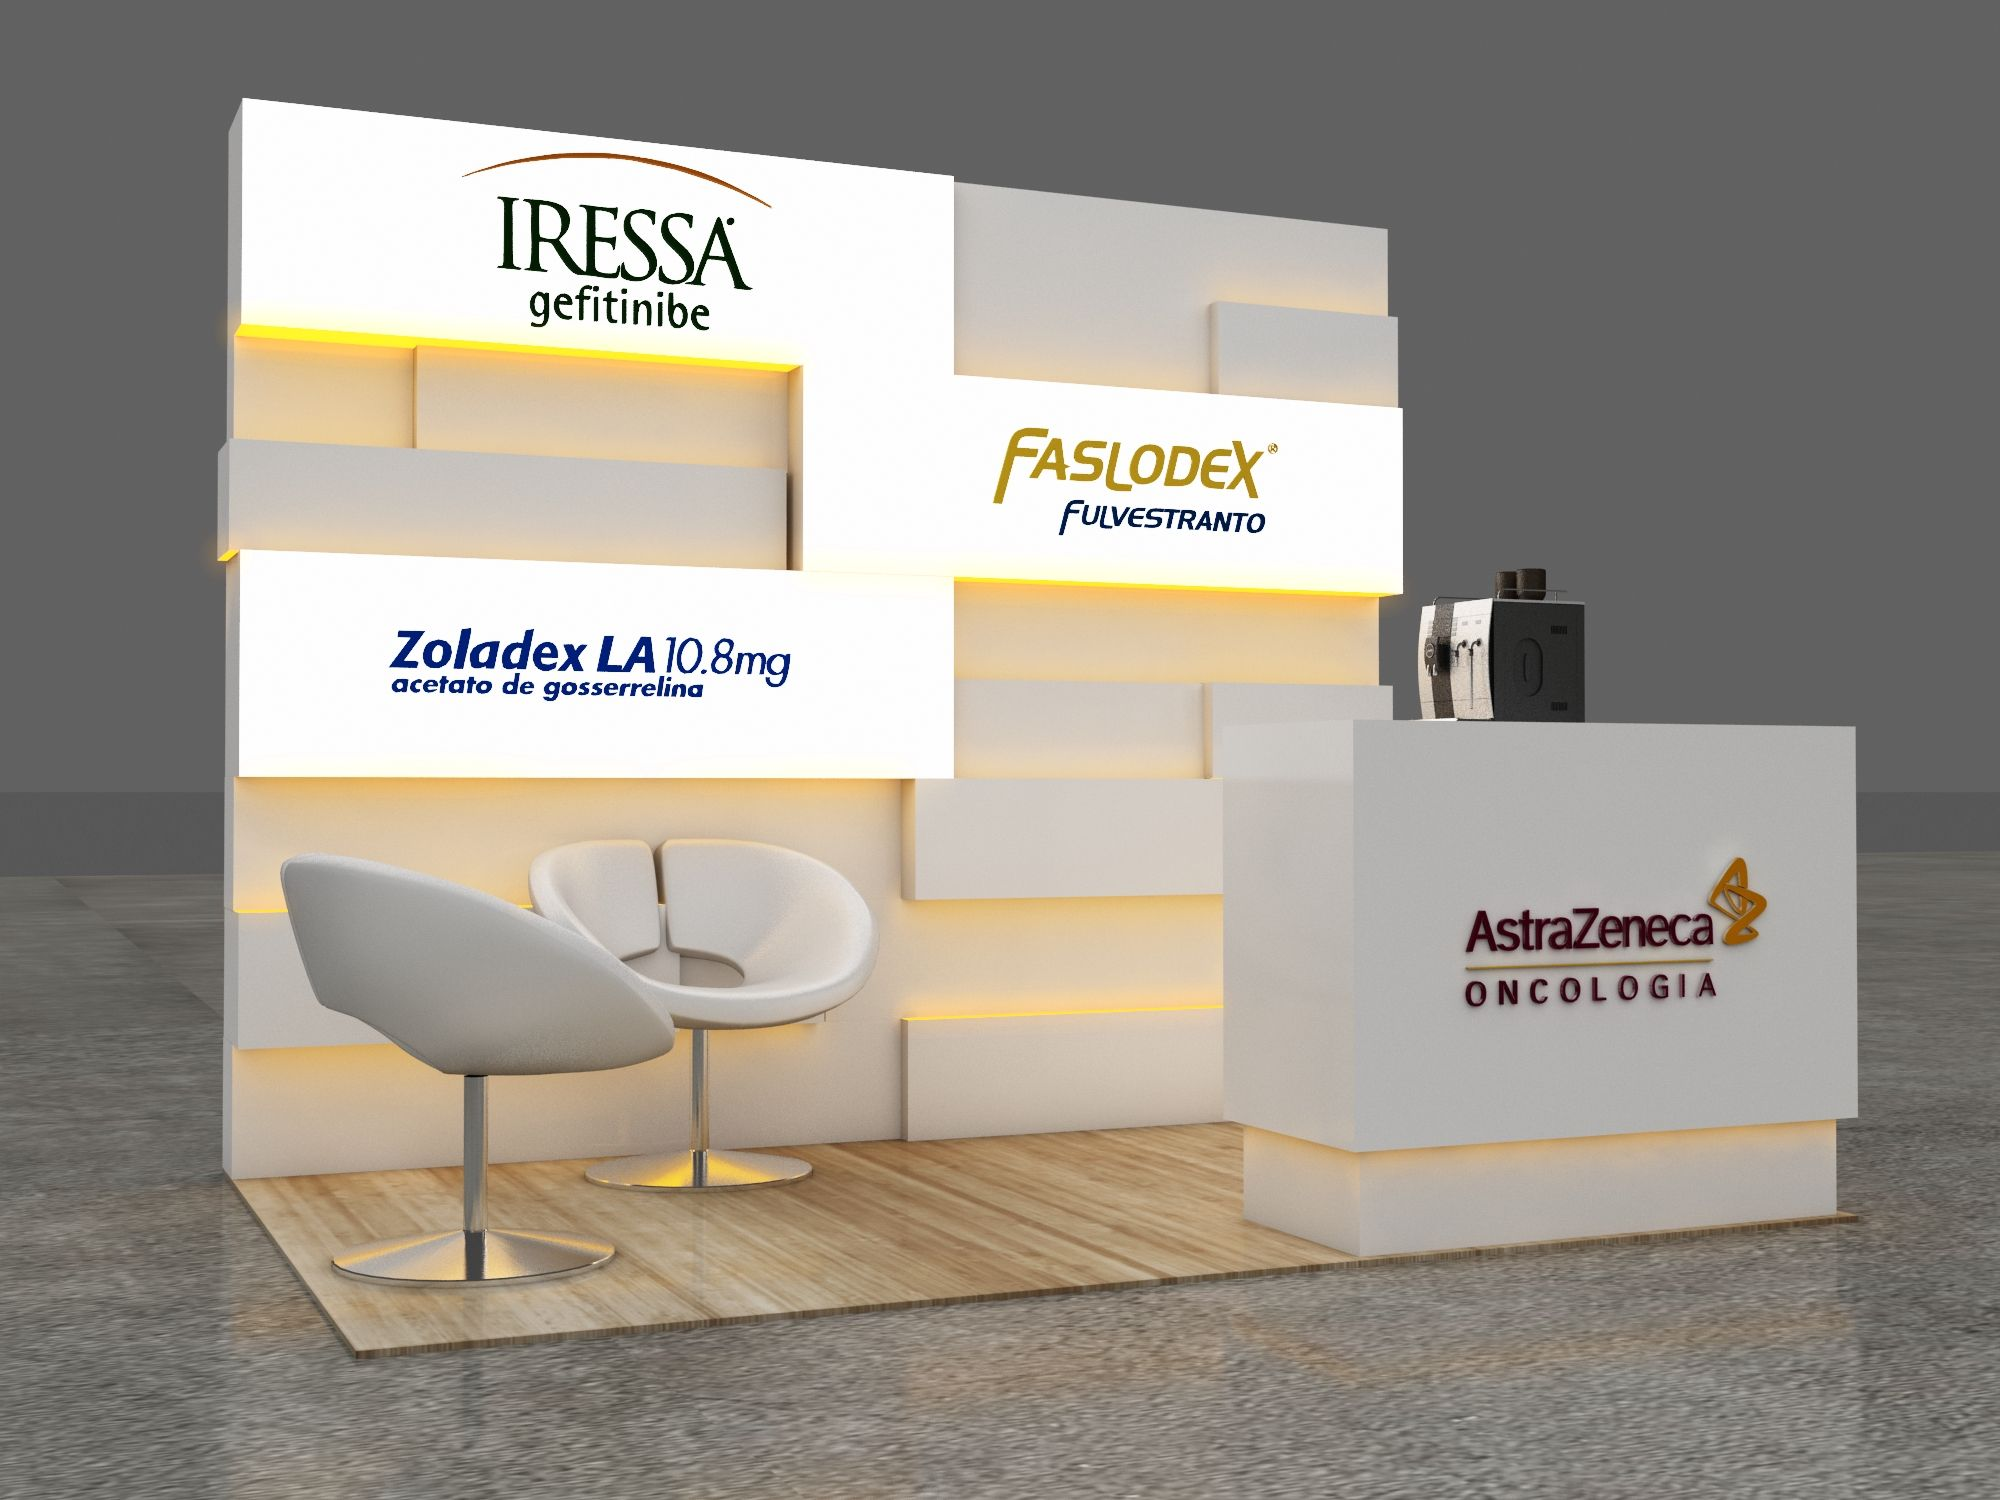 Pin By Thais Morais On Small Stands Stand Design Exhibition Stand Design Booth Design